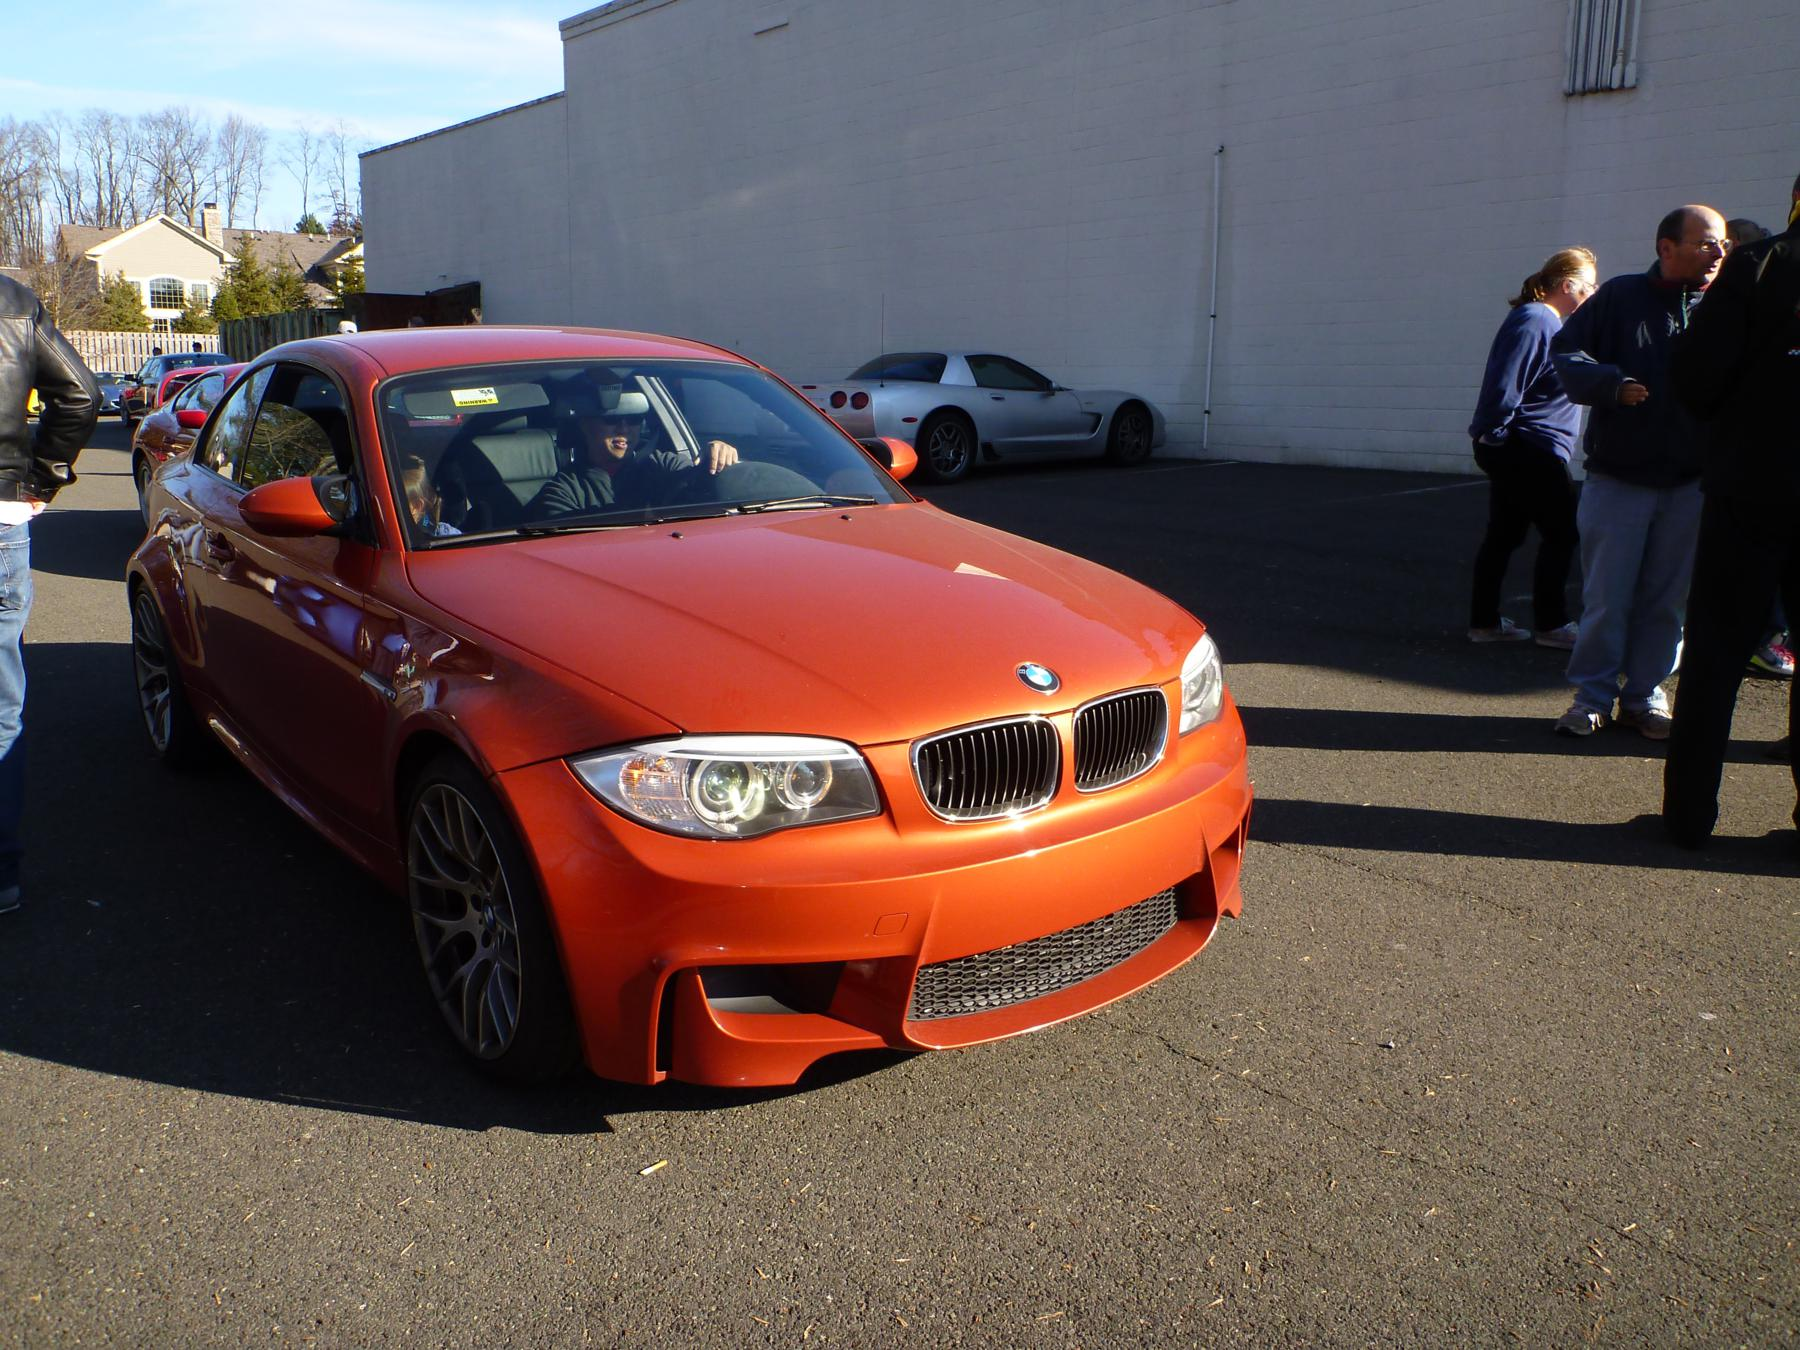 F10 M5 at NJ Cars and Coffee - 12/18/2011-12-18-2011-041_1800x1350.jpg